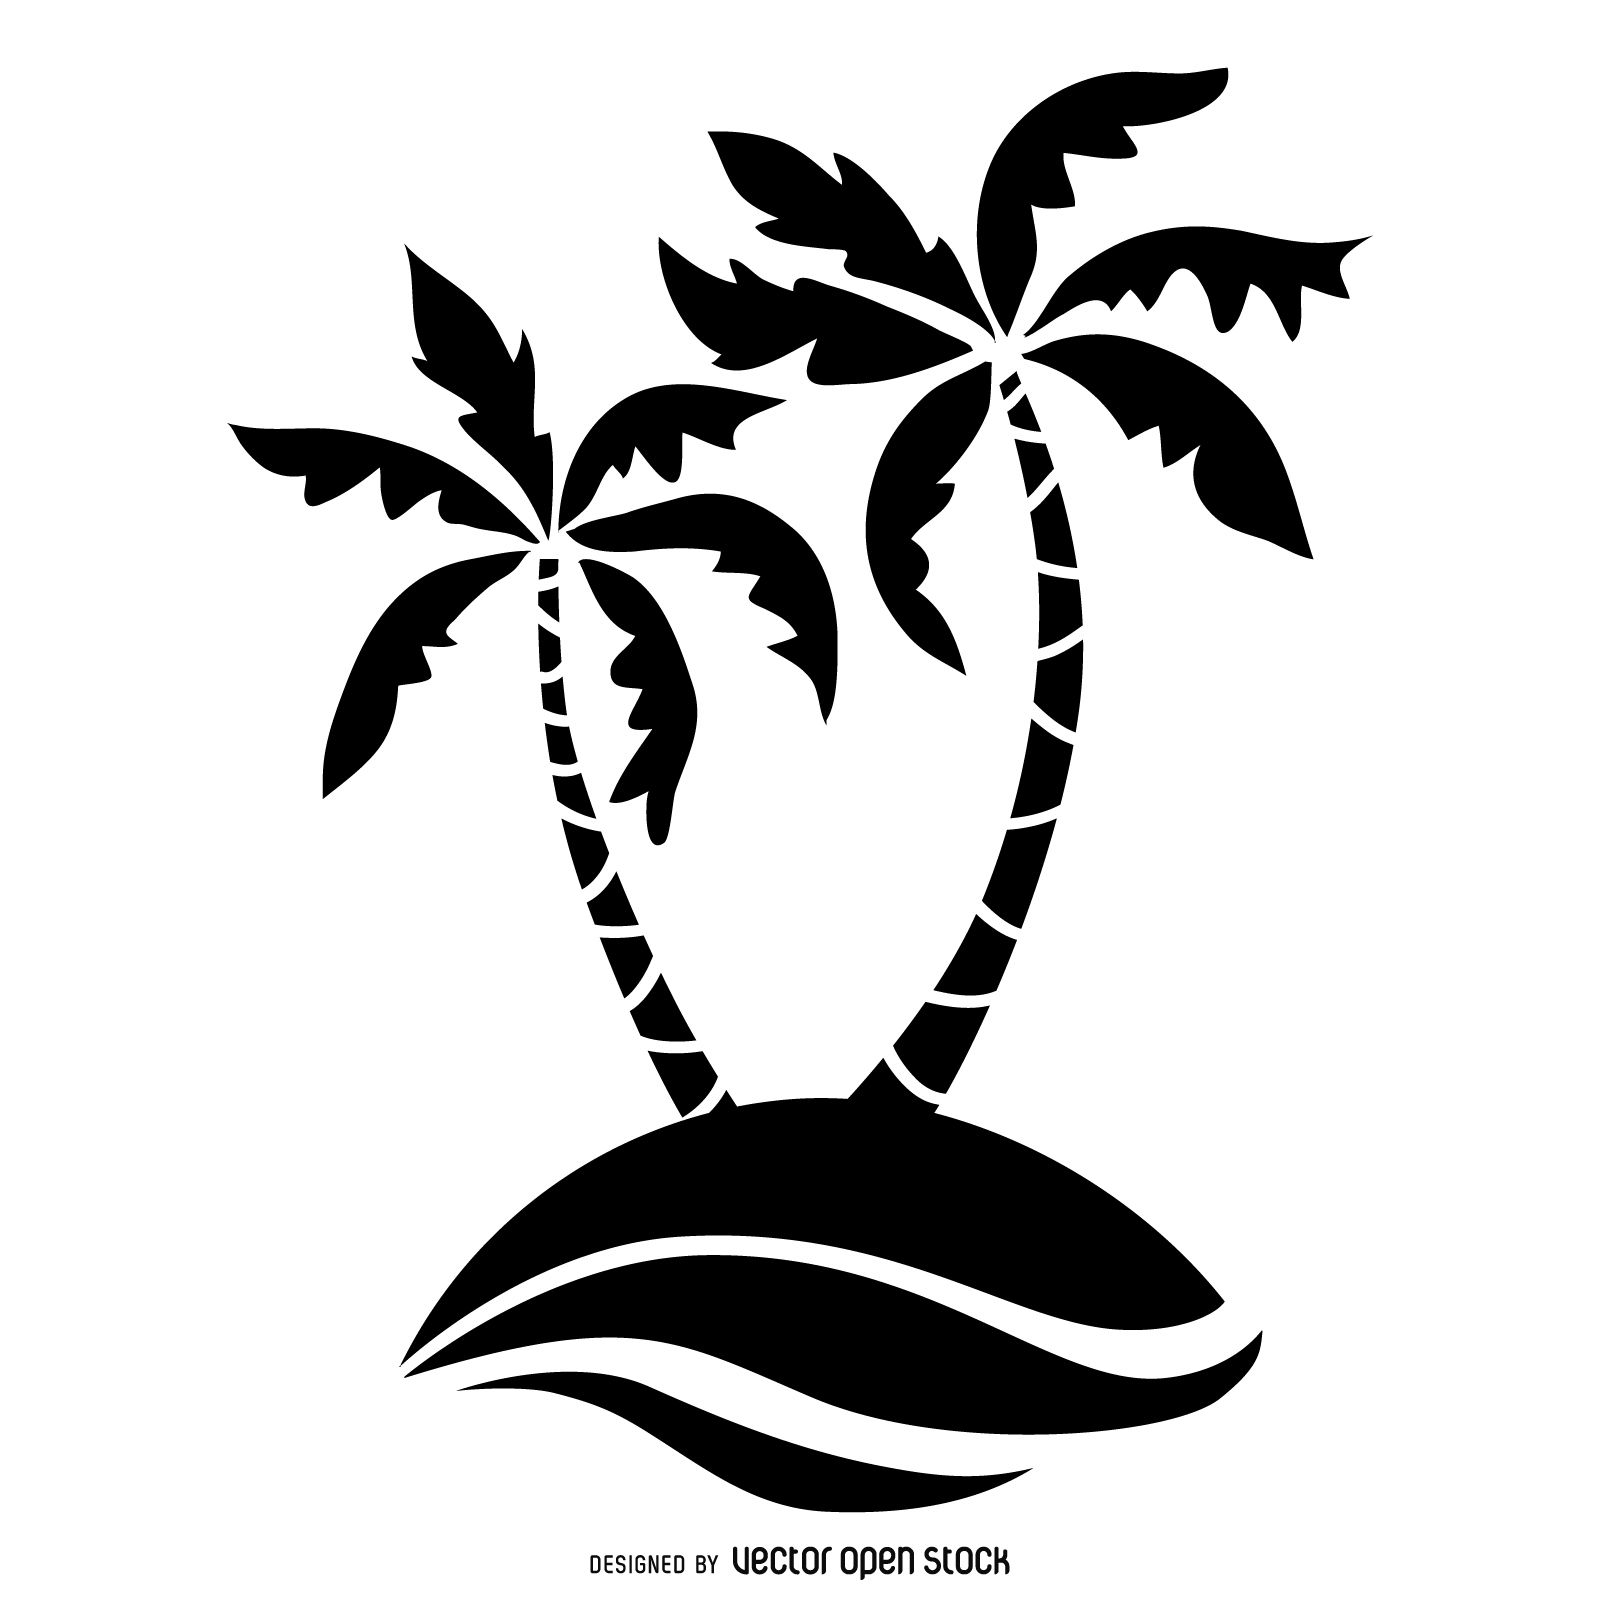 Flat illustrated palm trees in black over white Silhouette includes